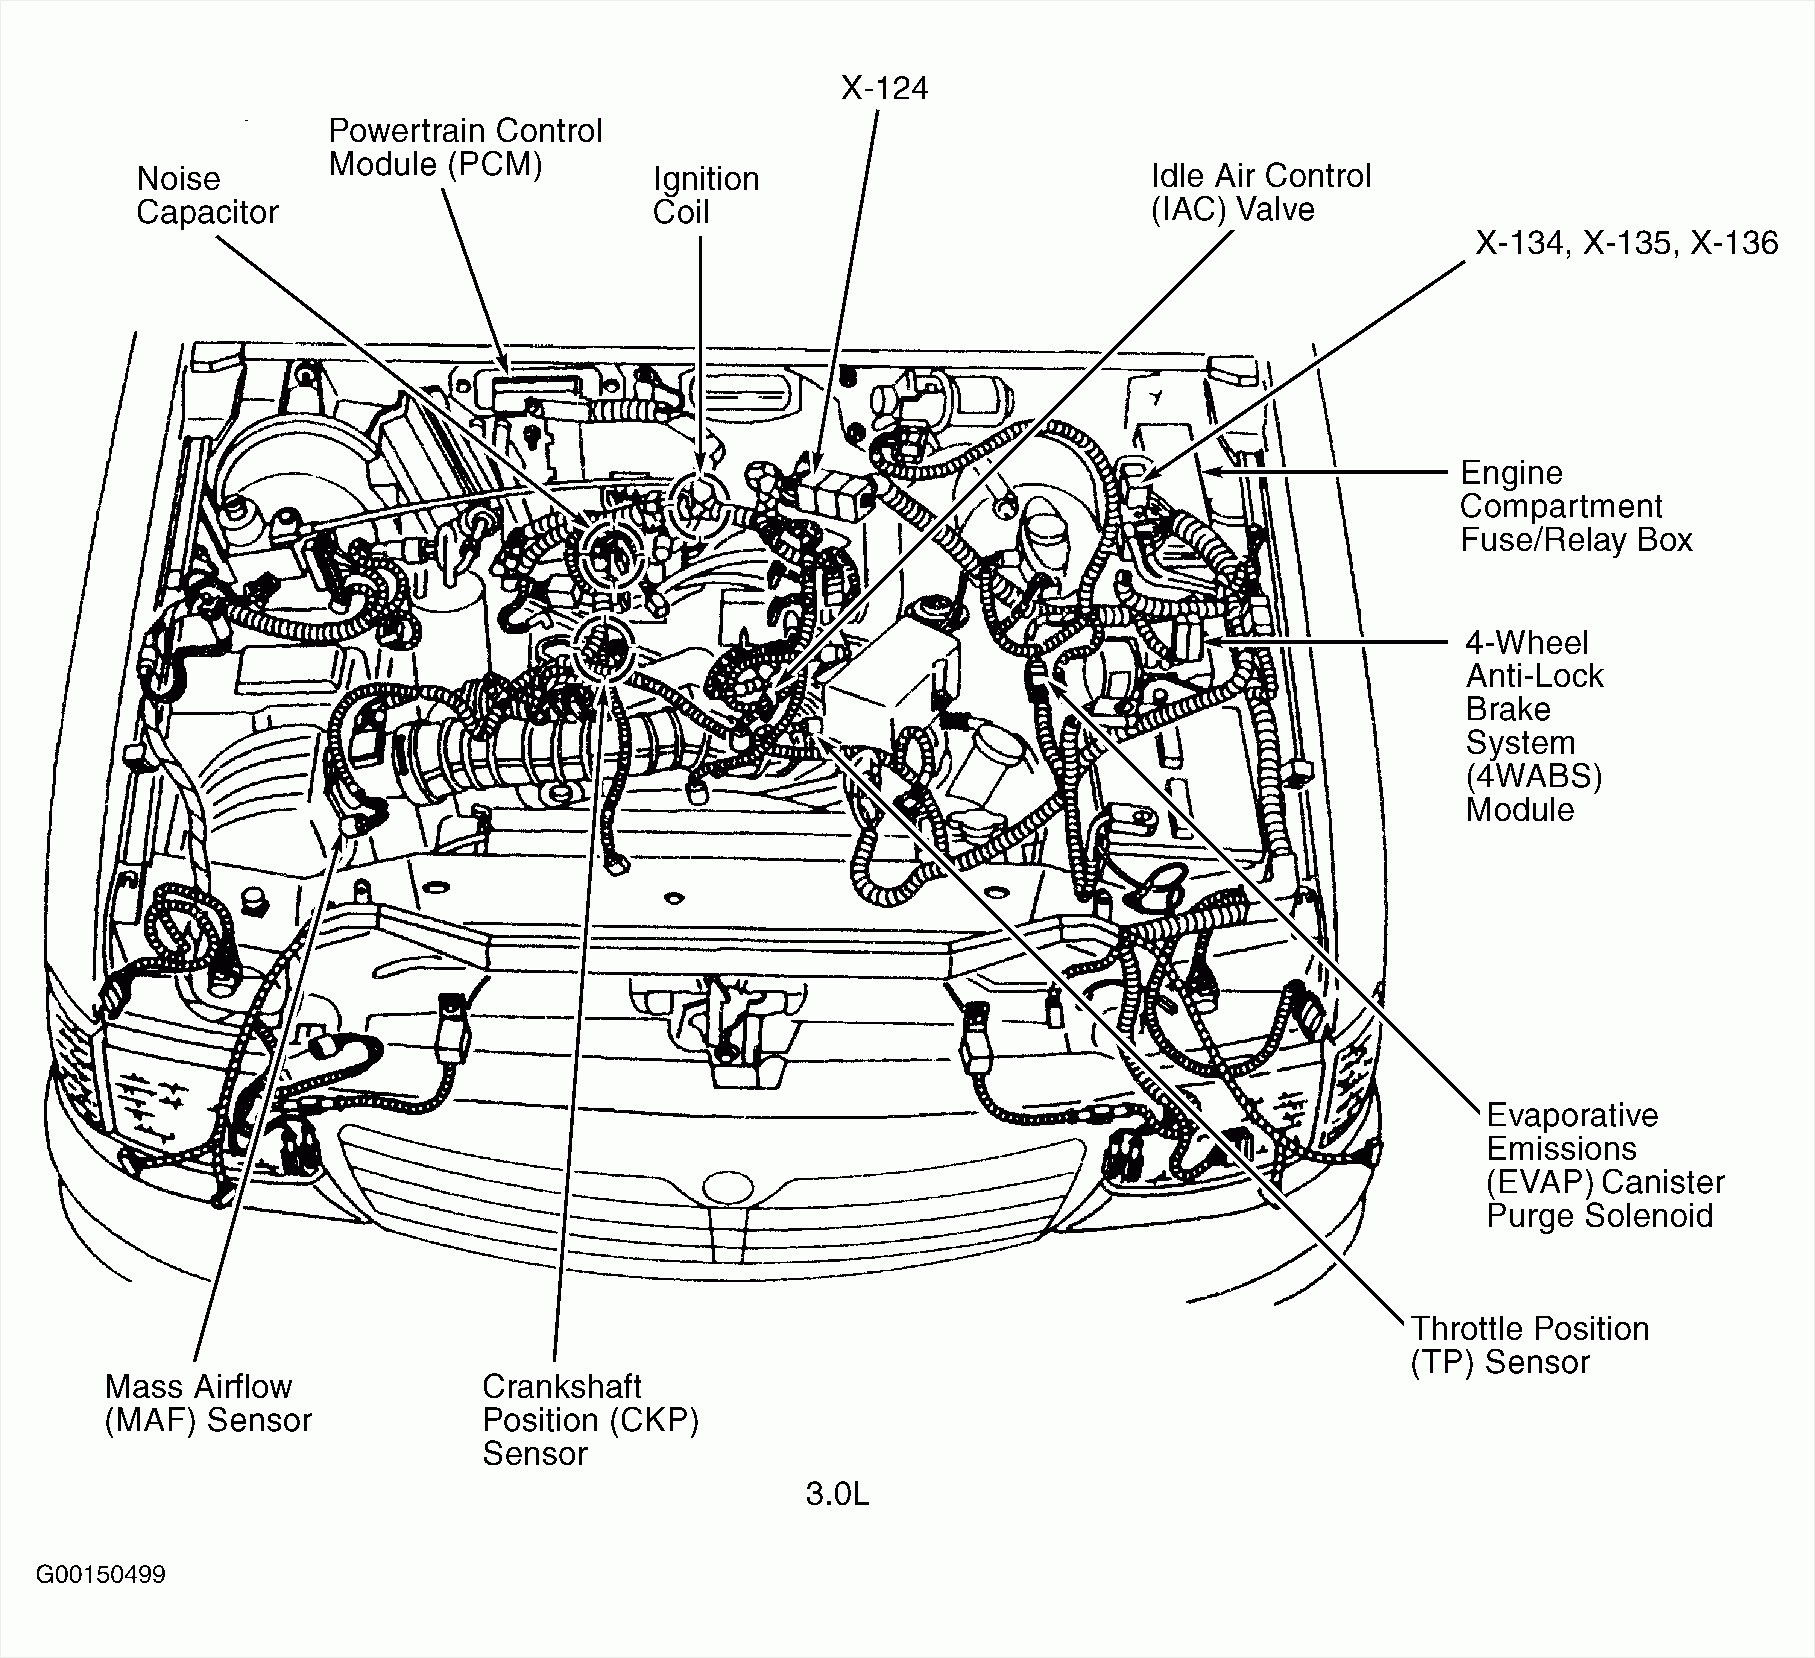 3 1 v6 engine diagram data schematics wiring diagram u2022 rh xrkarting com  Chevy 3.8 Engine